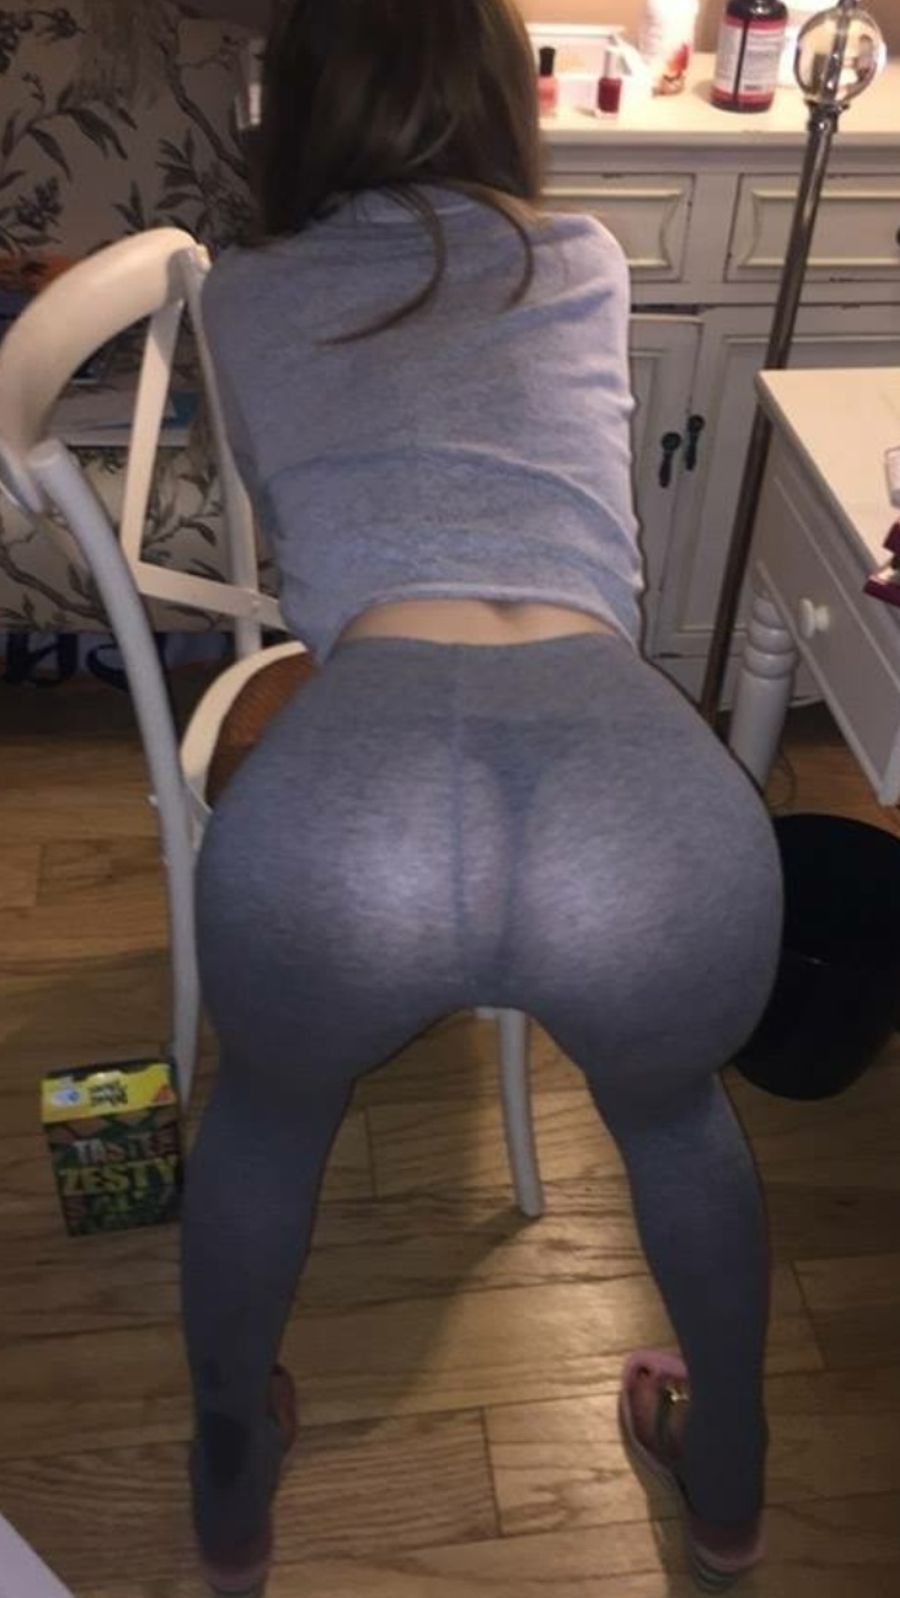 Sexy amateur girl drops her yoga pants to flaunt her sexy chubby butt naked  1752653